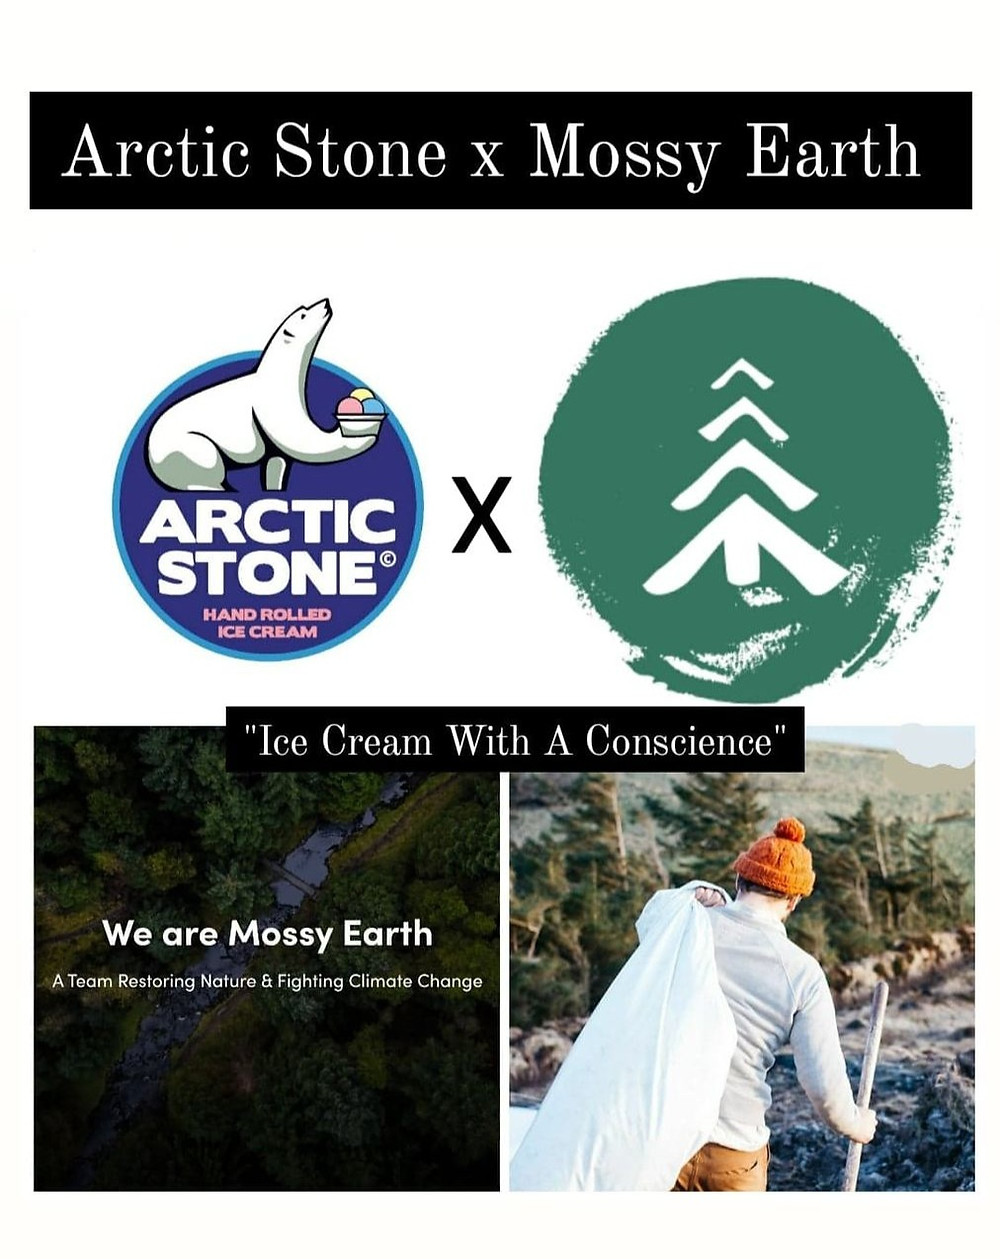 Arctic Stone x Mossy Earth - Irish Reforestation Campaign